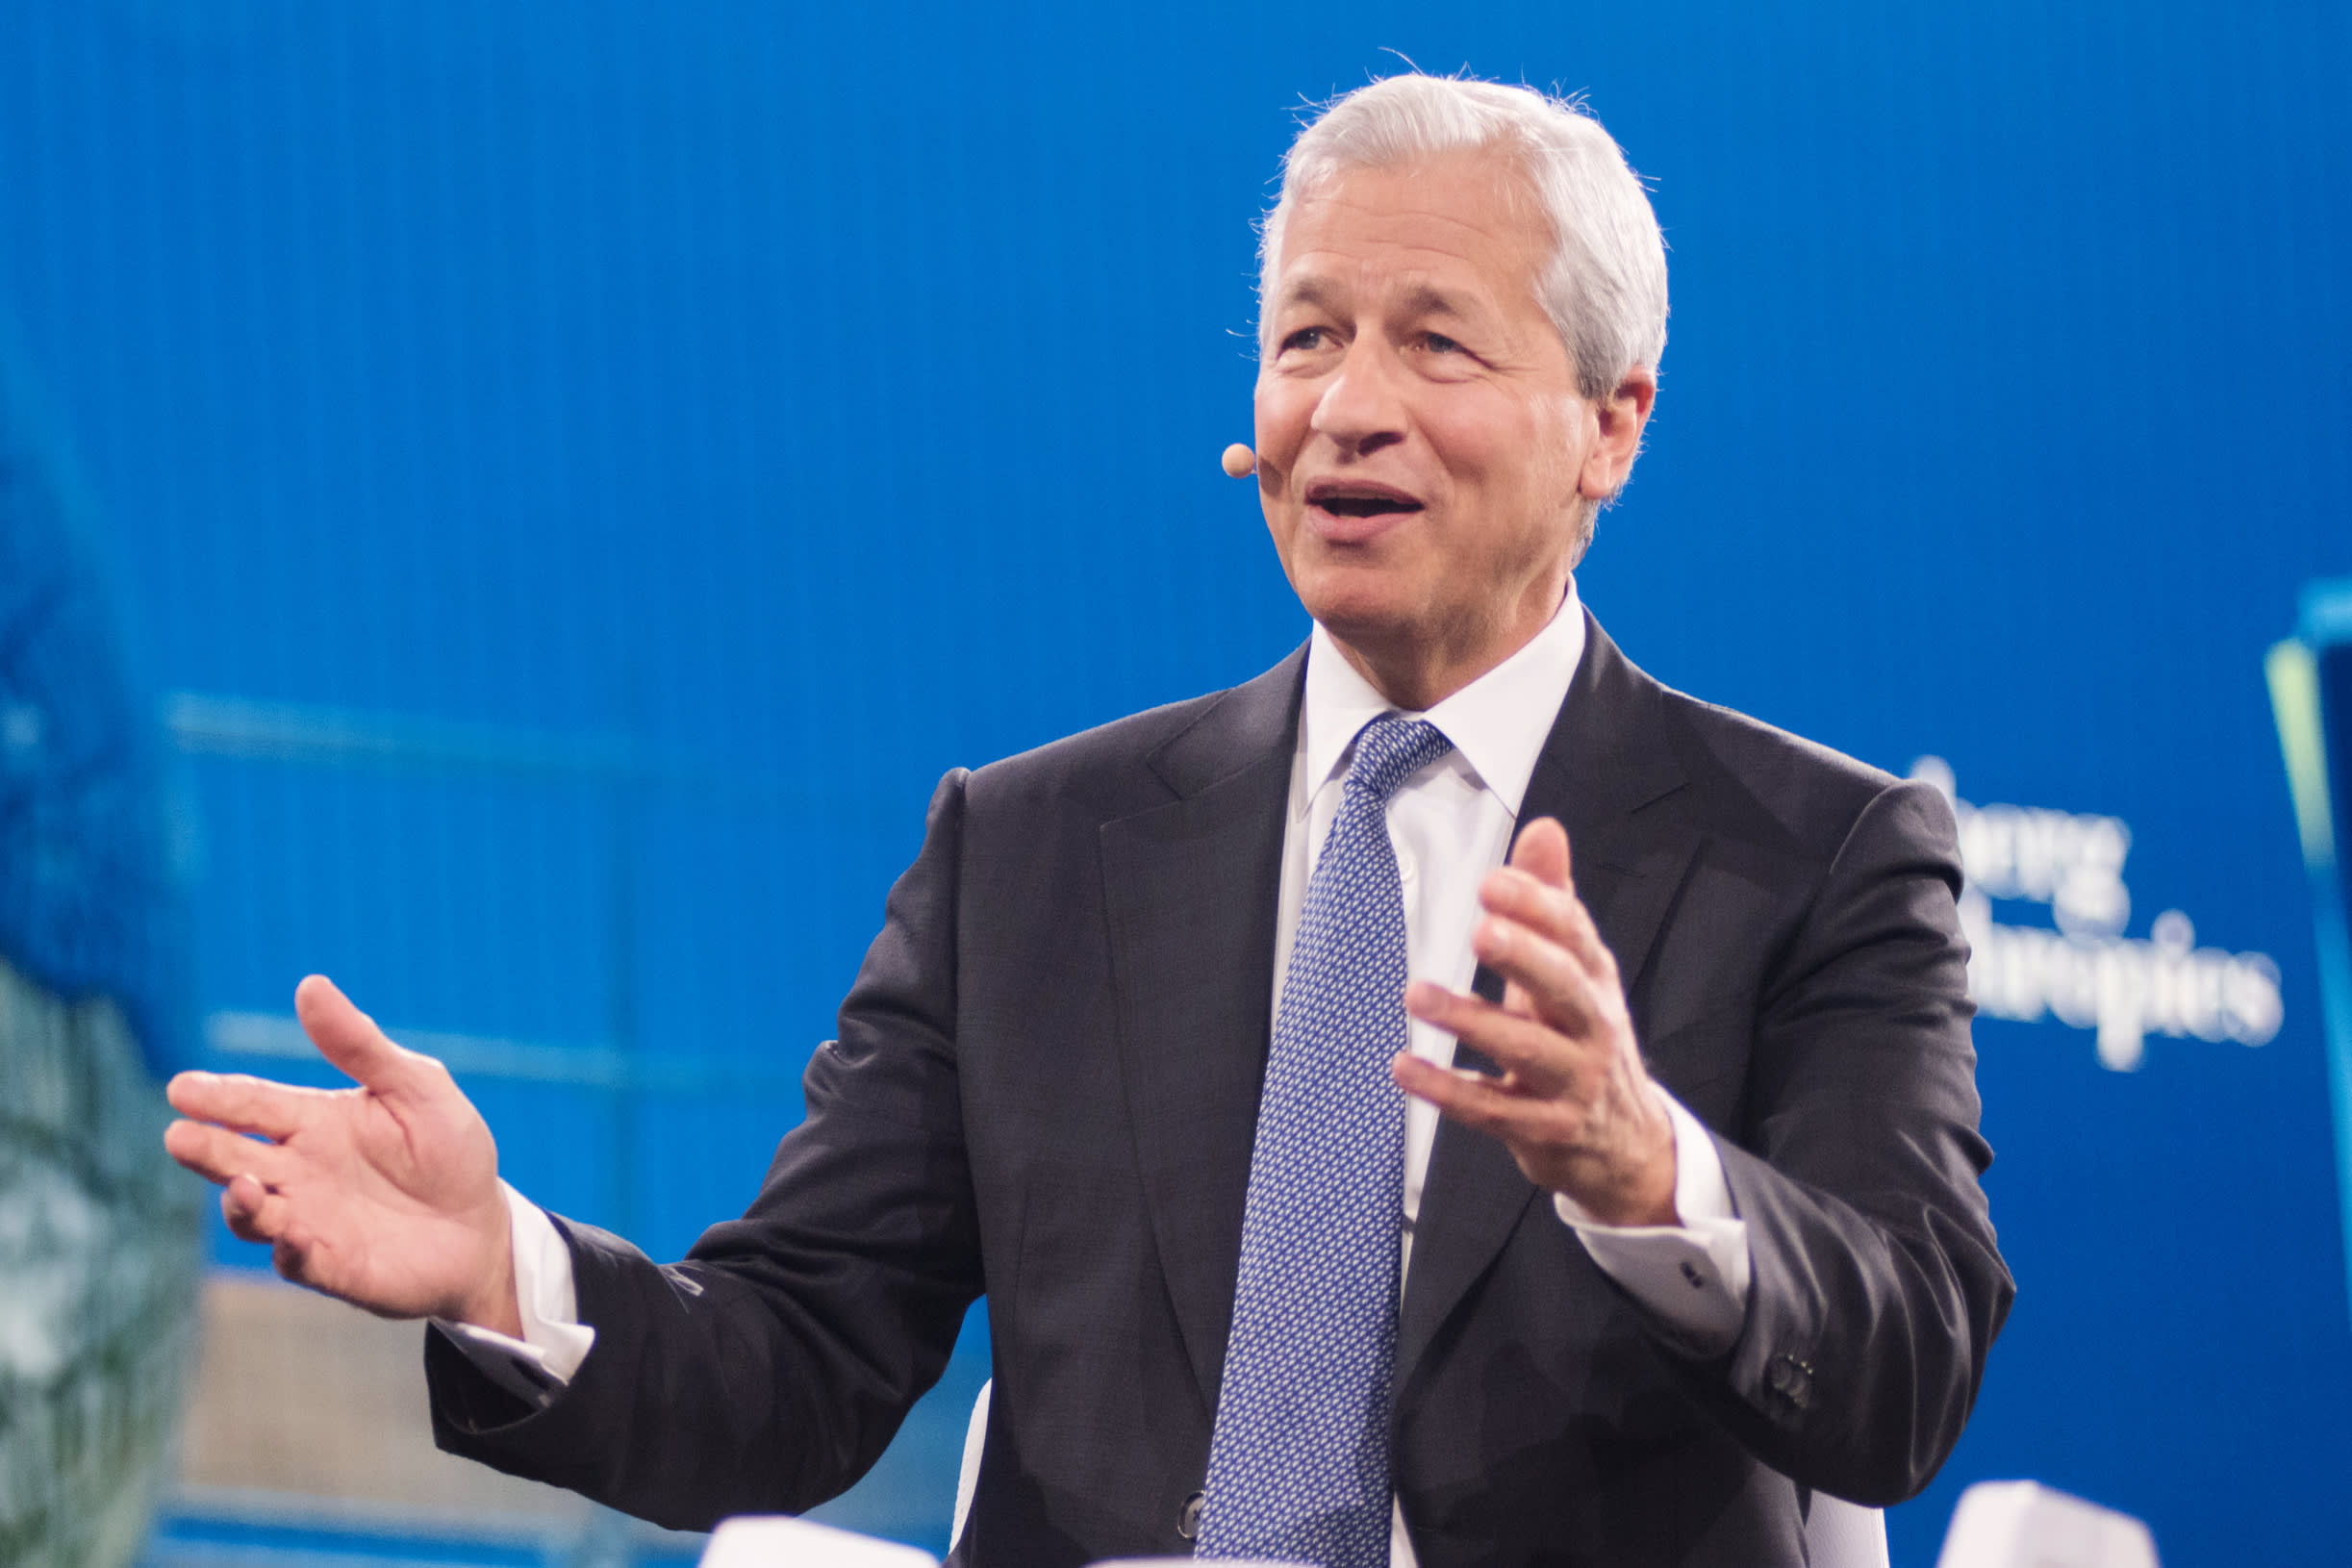 JP Morgan is at risk of losing big on its WeWork bet, a major potential blow to CEO Jamie Dimon